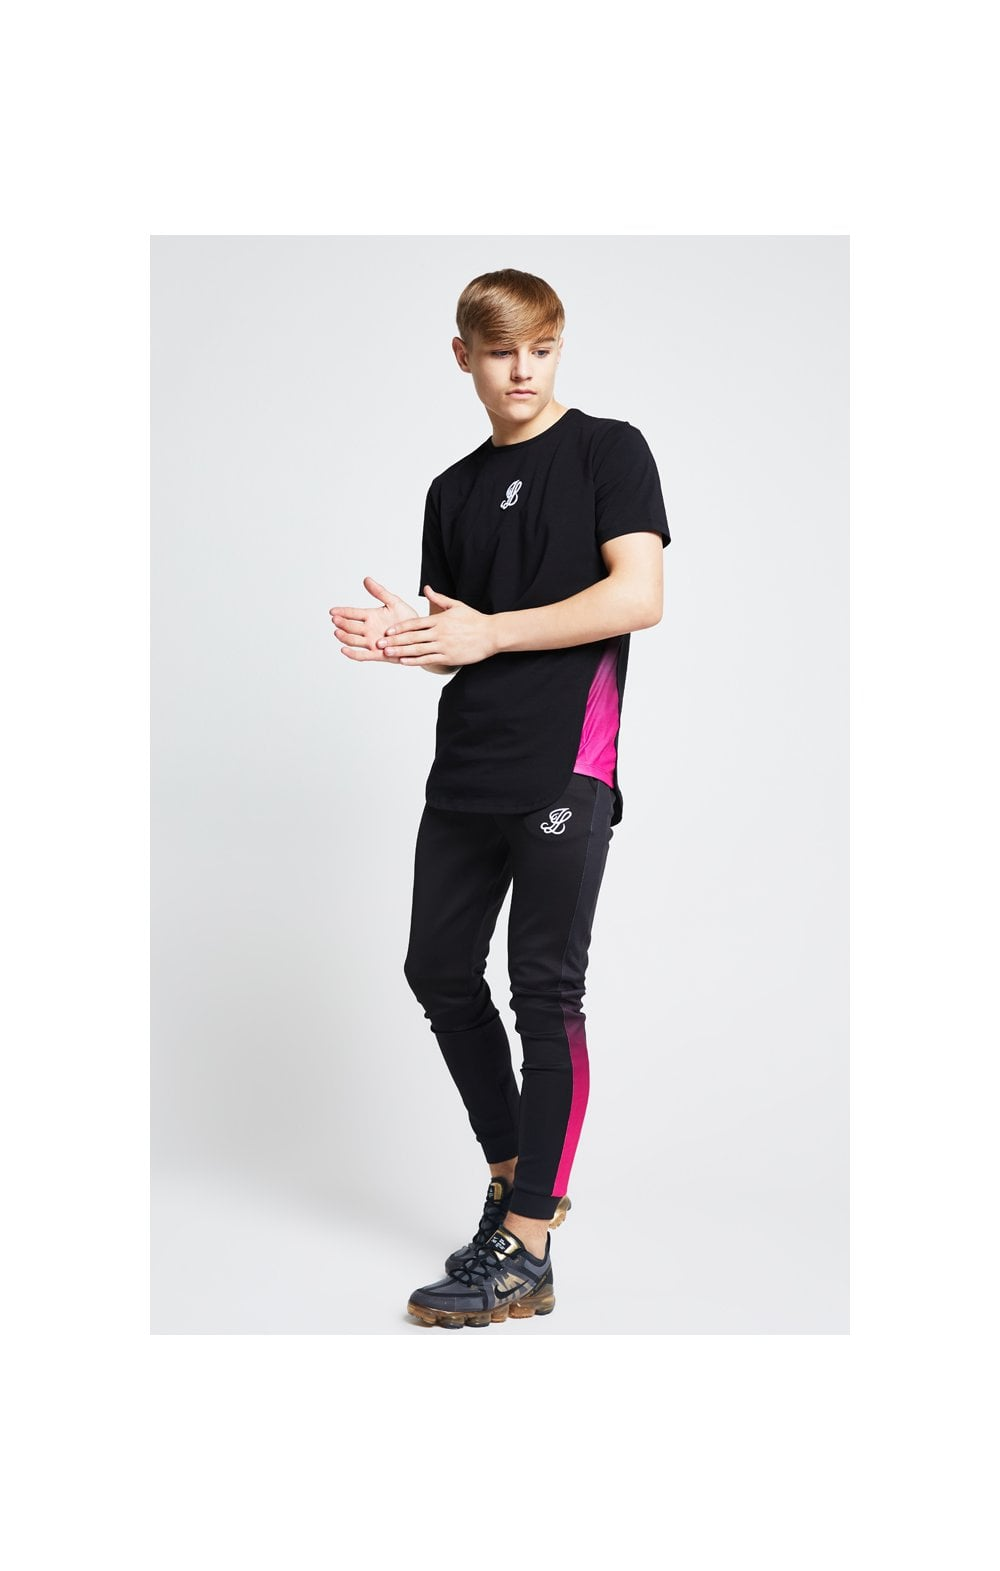 Illusive London Slide Tee - Black & Pink (2)